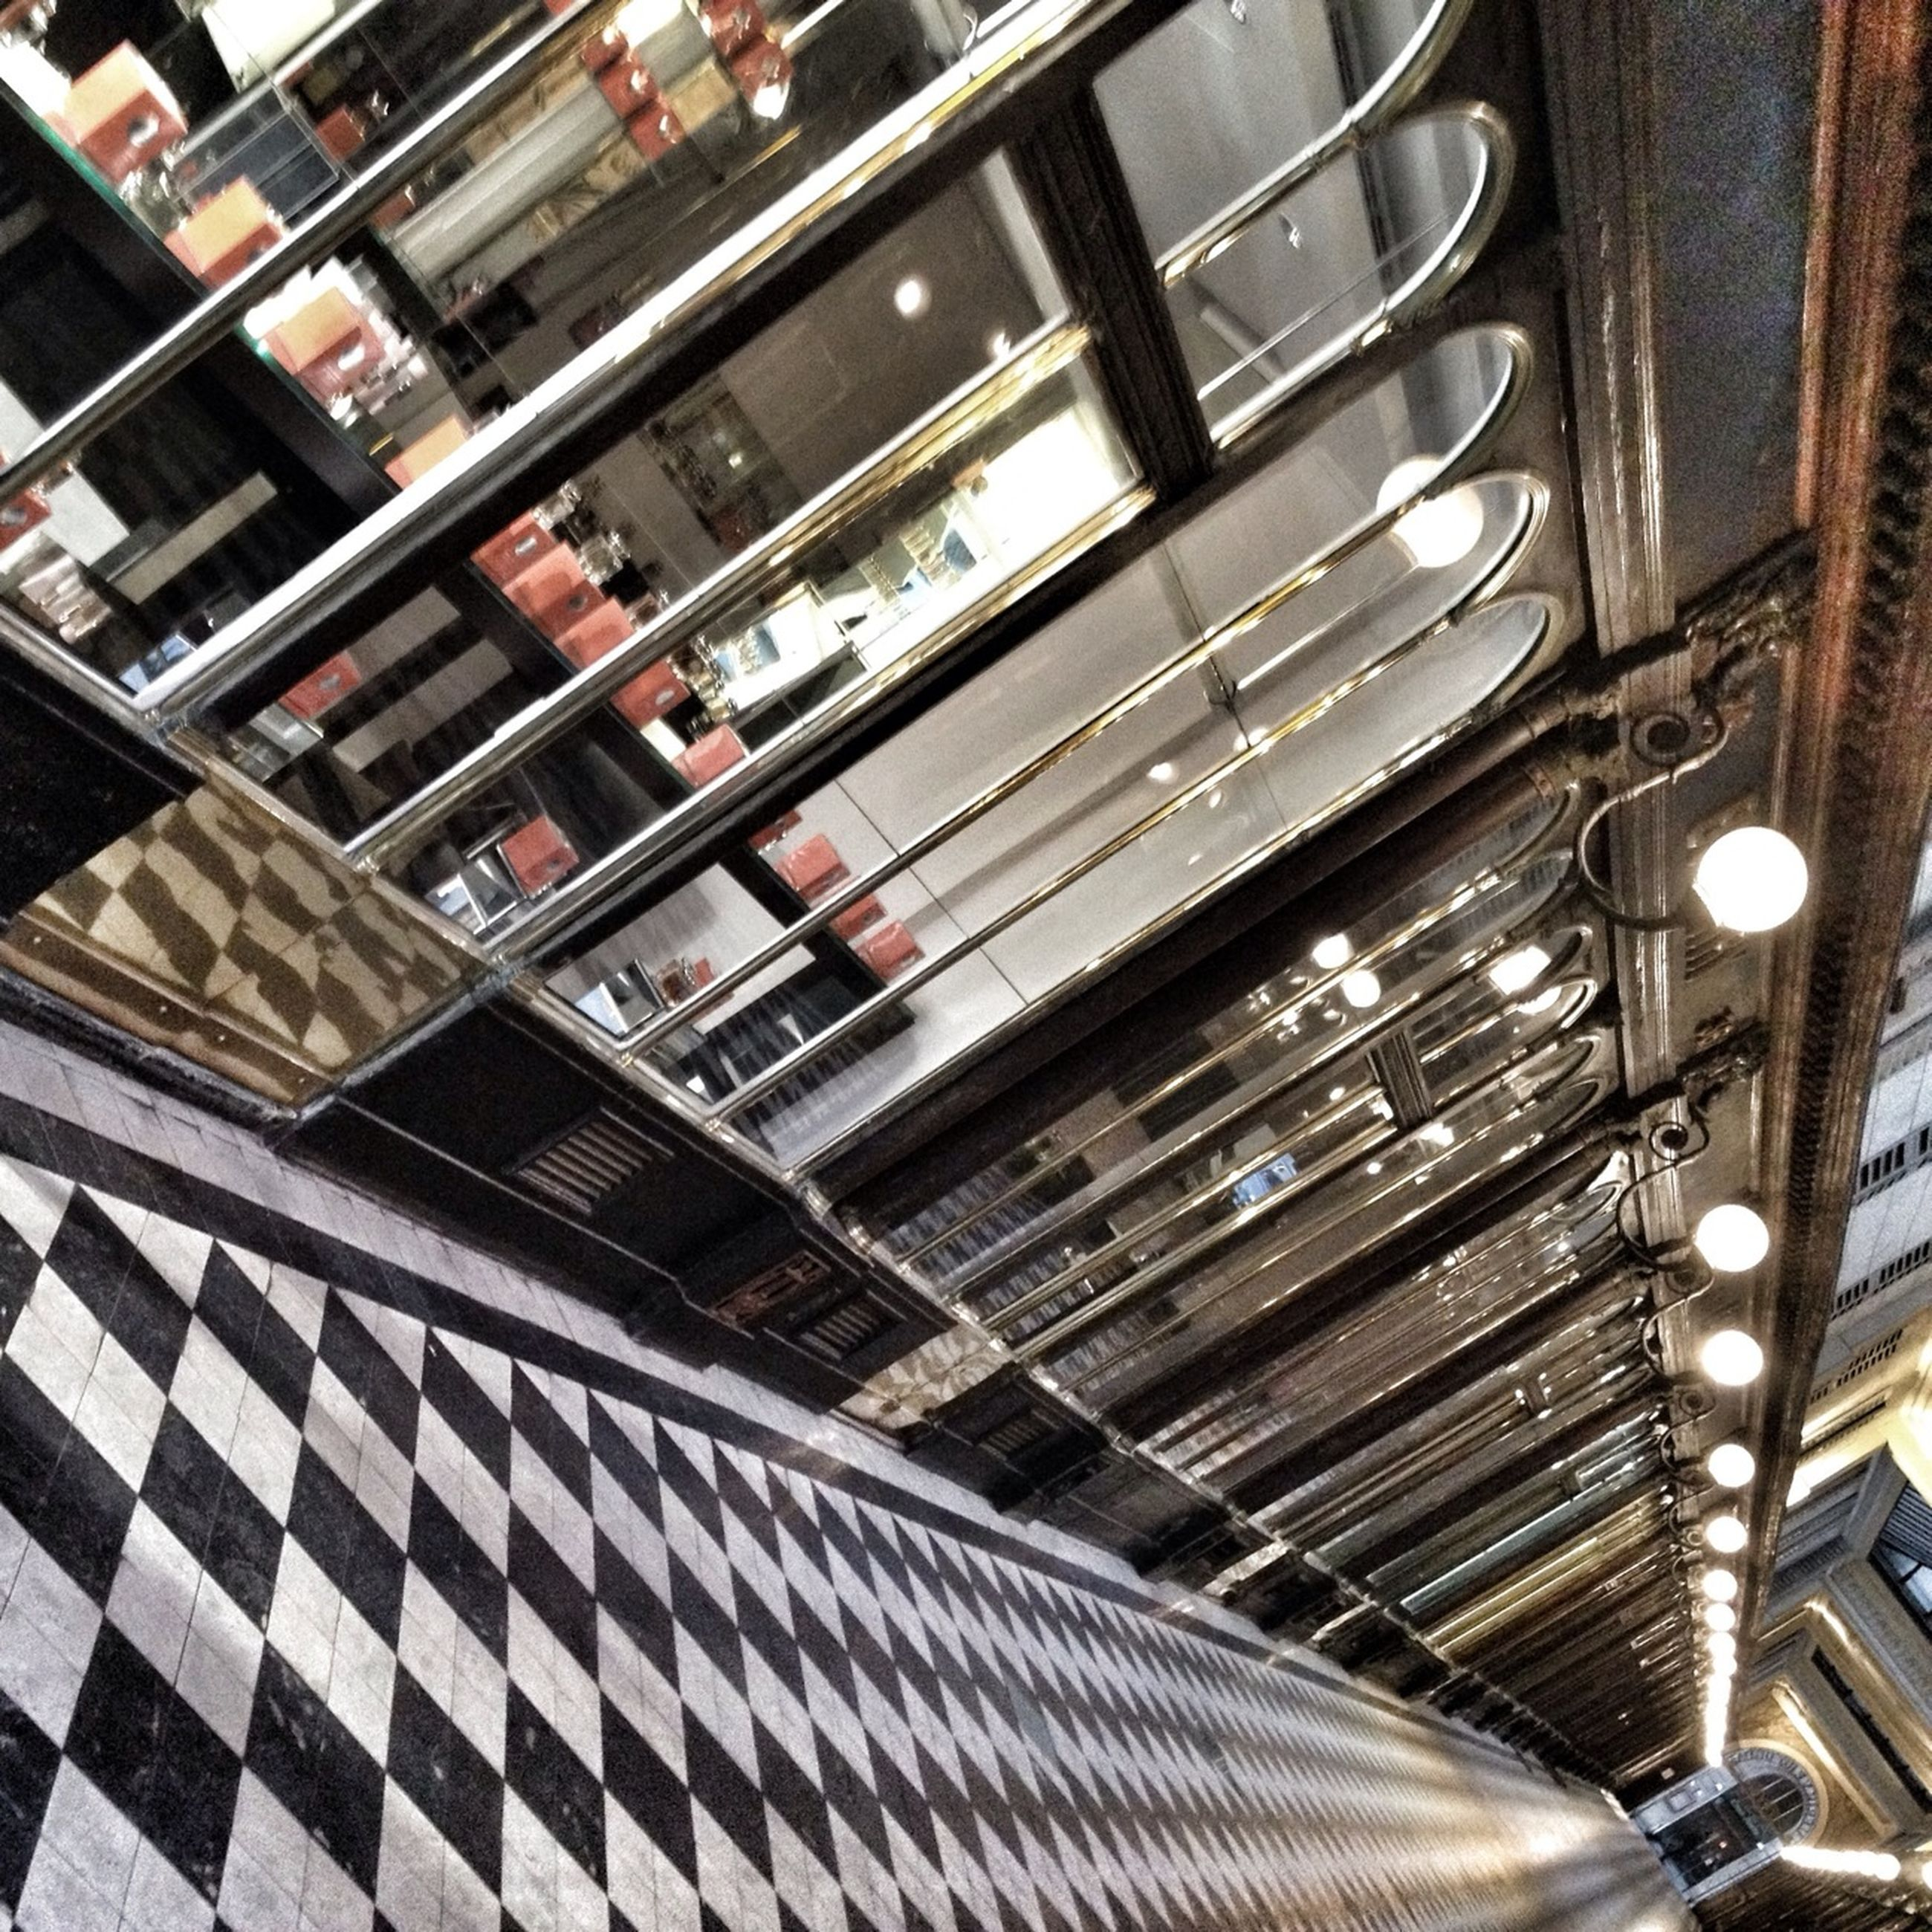 indoors, high angle view, in a row, steps, pattern, no people, steps and staircases, seat, technology, railing, metal, directly above, chair, repetition, arrangement, absence, staircase, large group of objects, order, modern